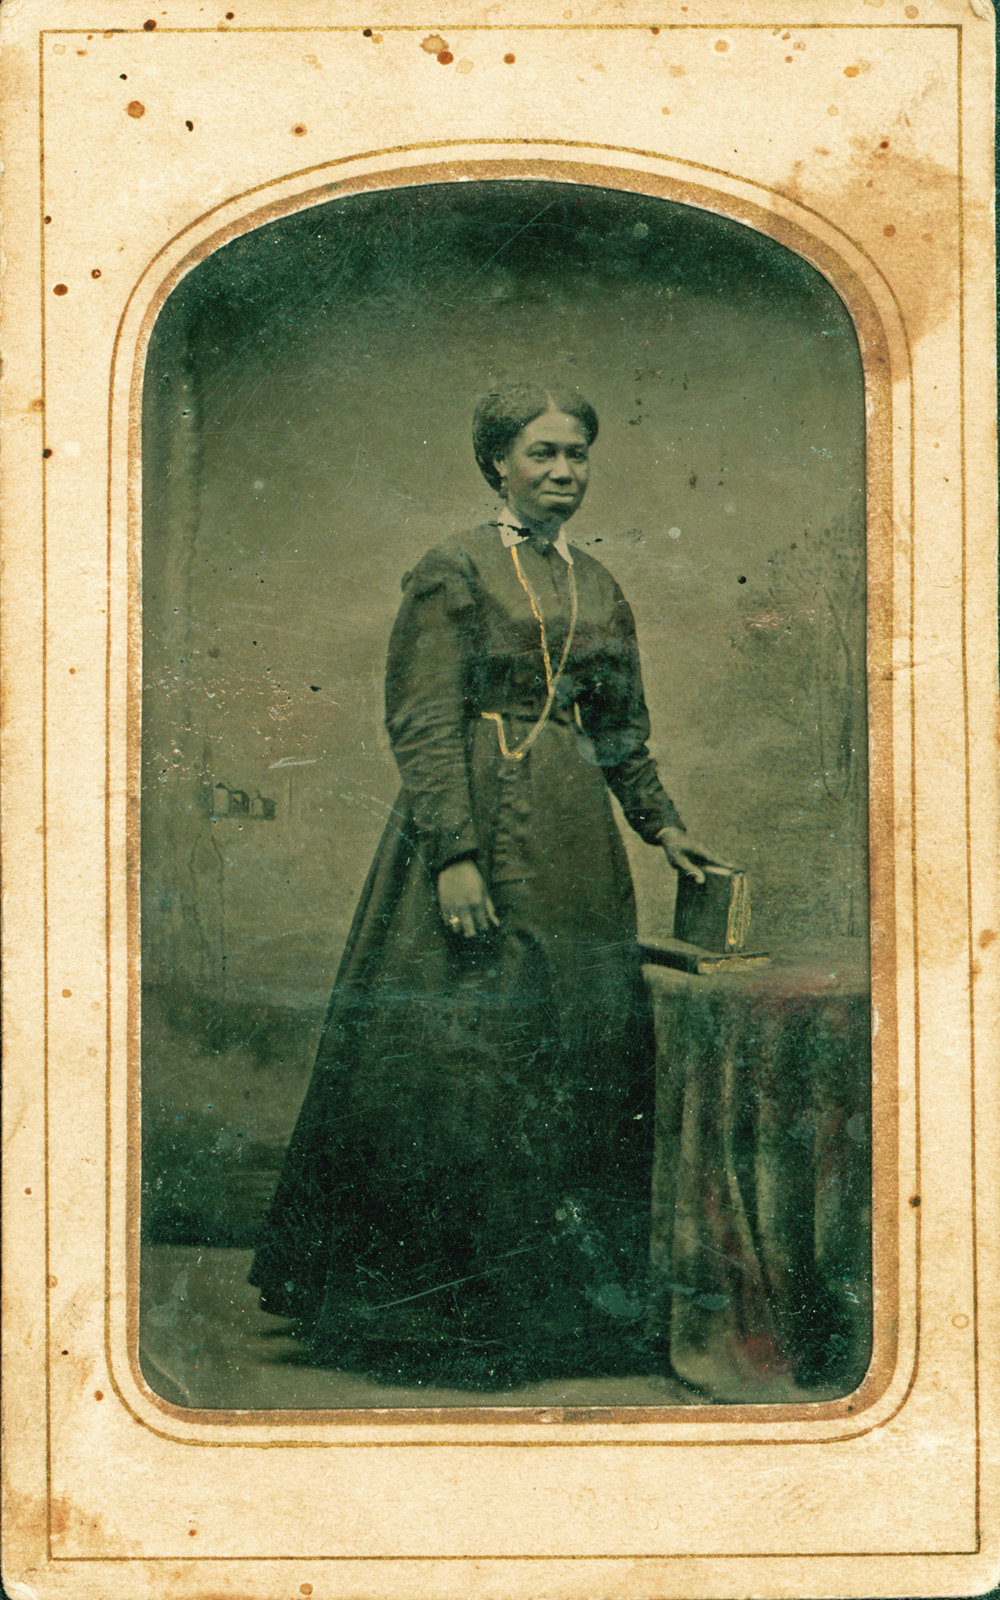 A woman standing with a book beside a table covered with a decorative cloth is featured in this small black and white tintype photograph. Courtesy the Brock University James A. Gibson Special Collections & Archives.